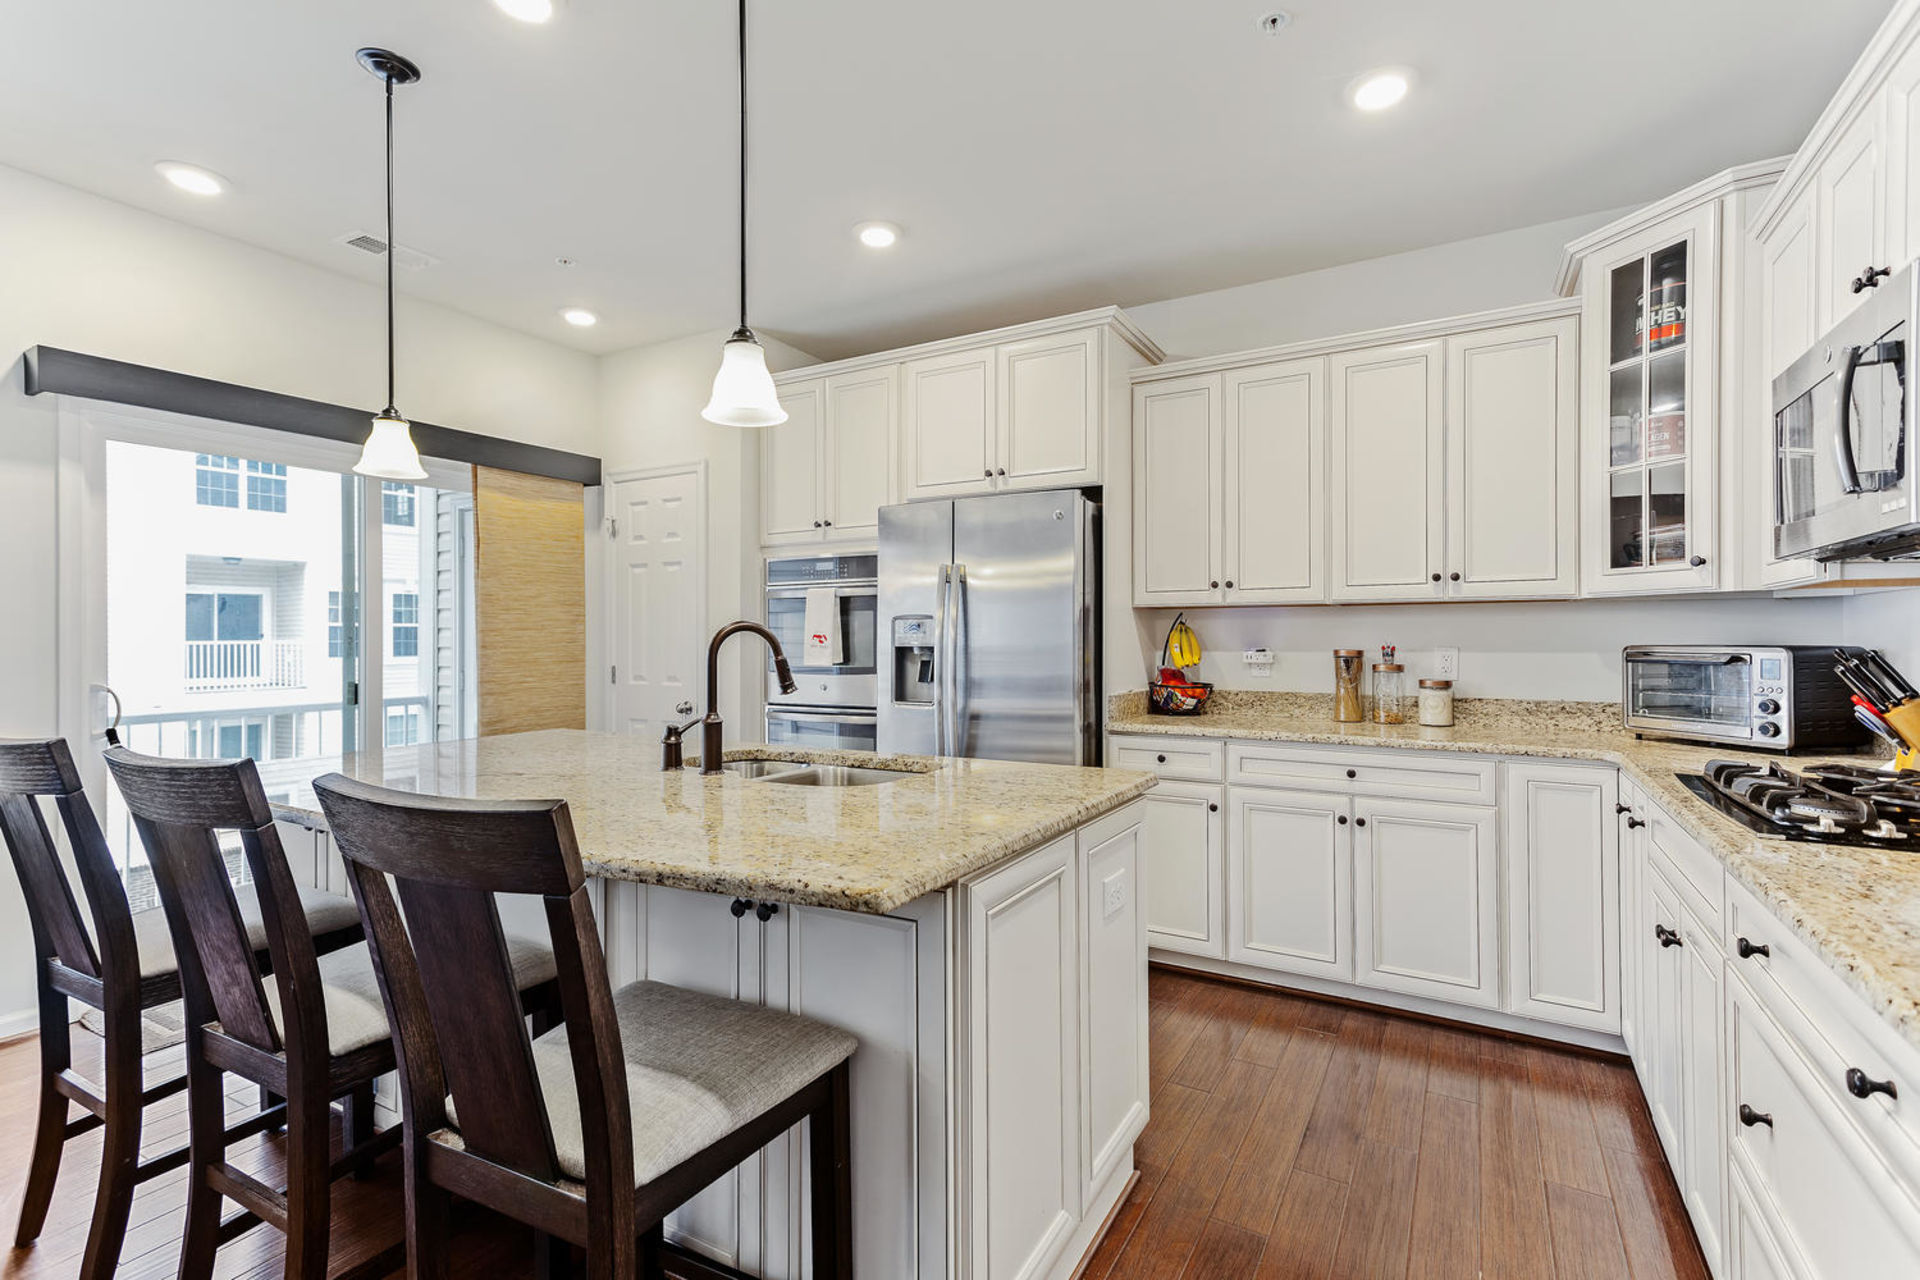 New Home Coming Soon in Chantilly, VA